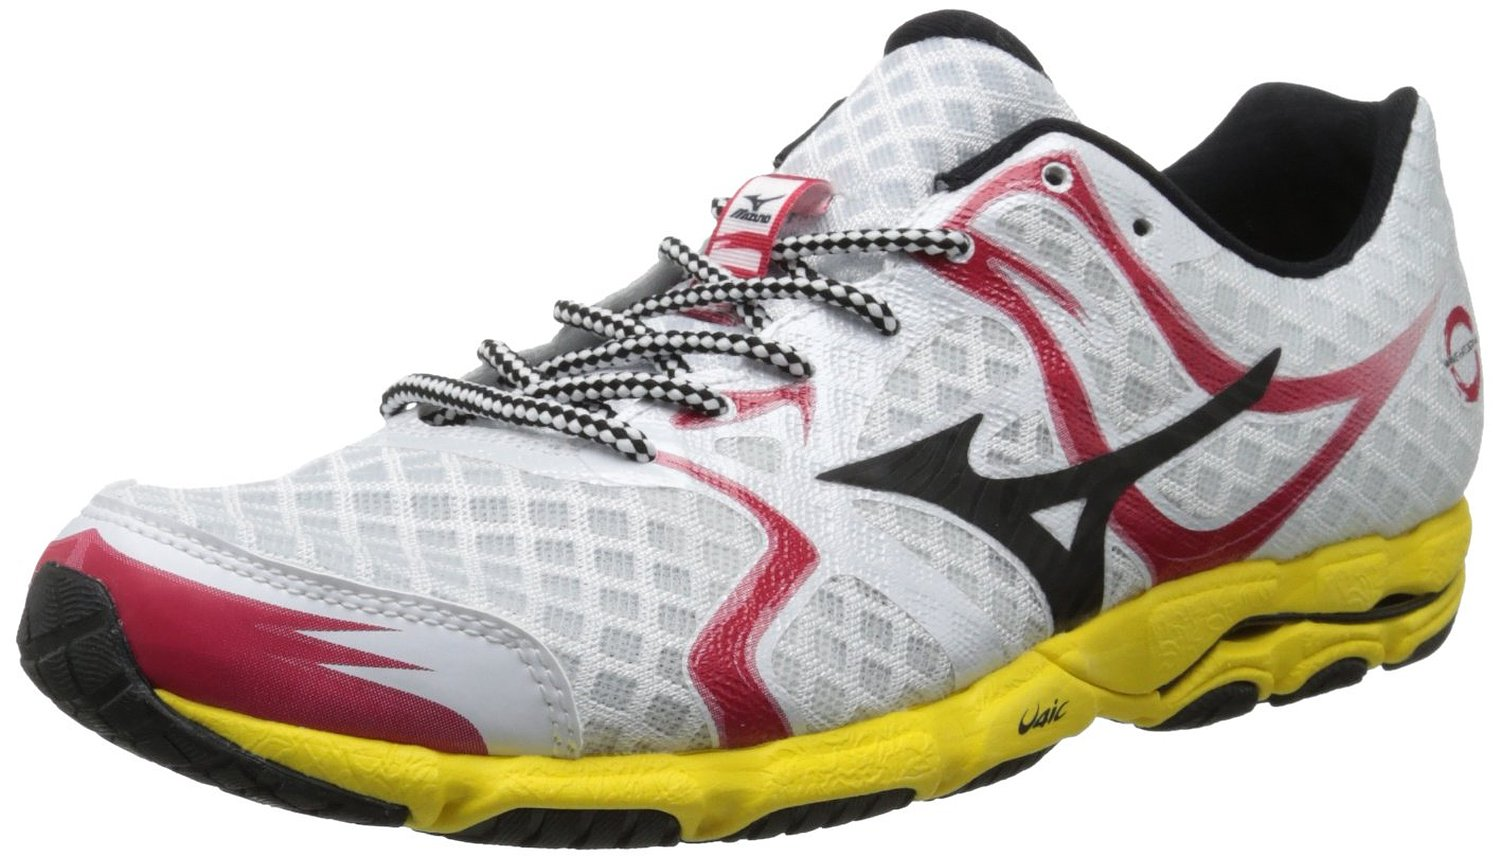 Mizuno Wave Hitogami Shoes Review